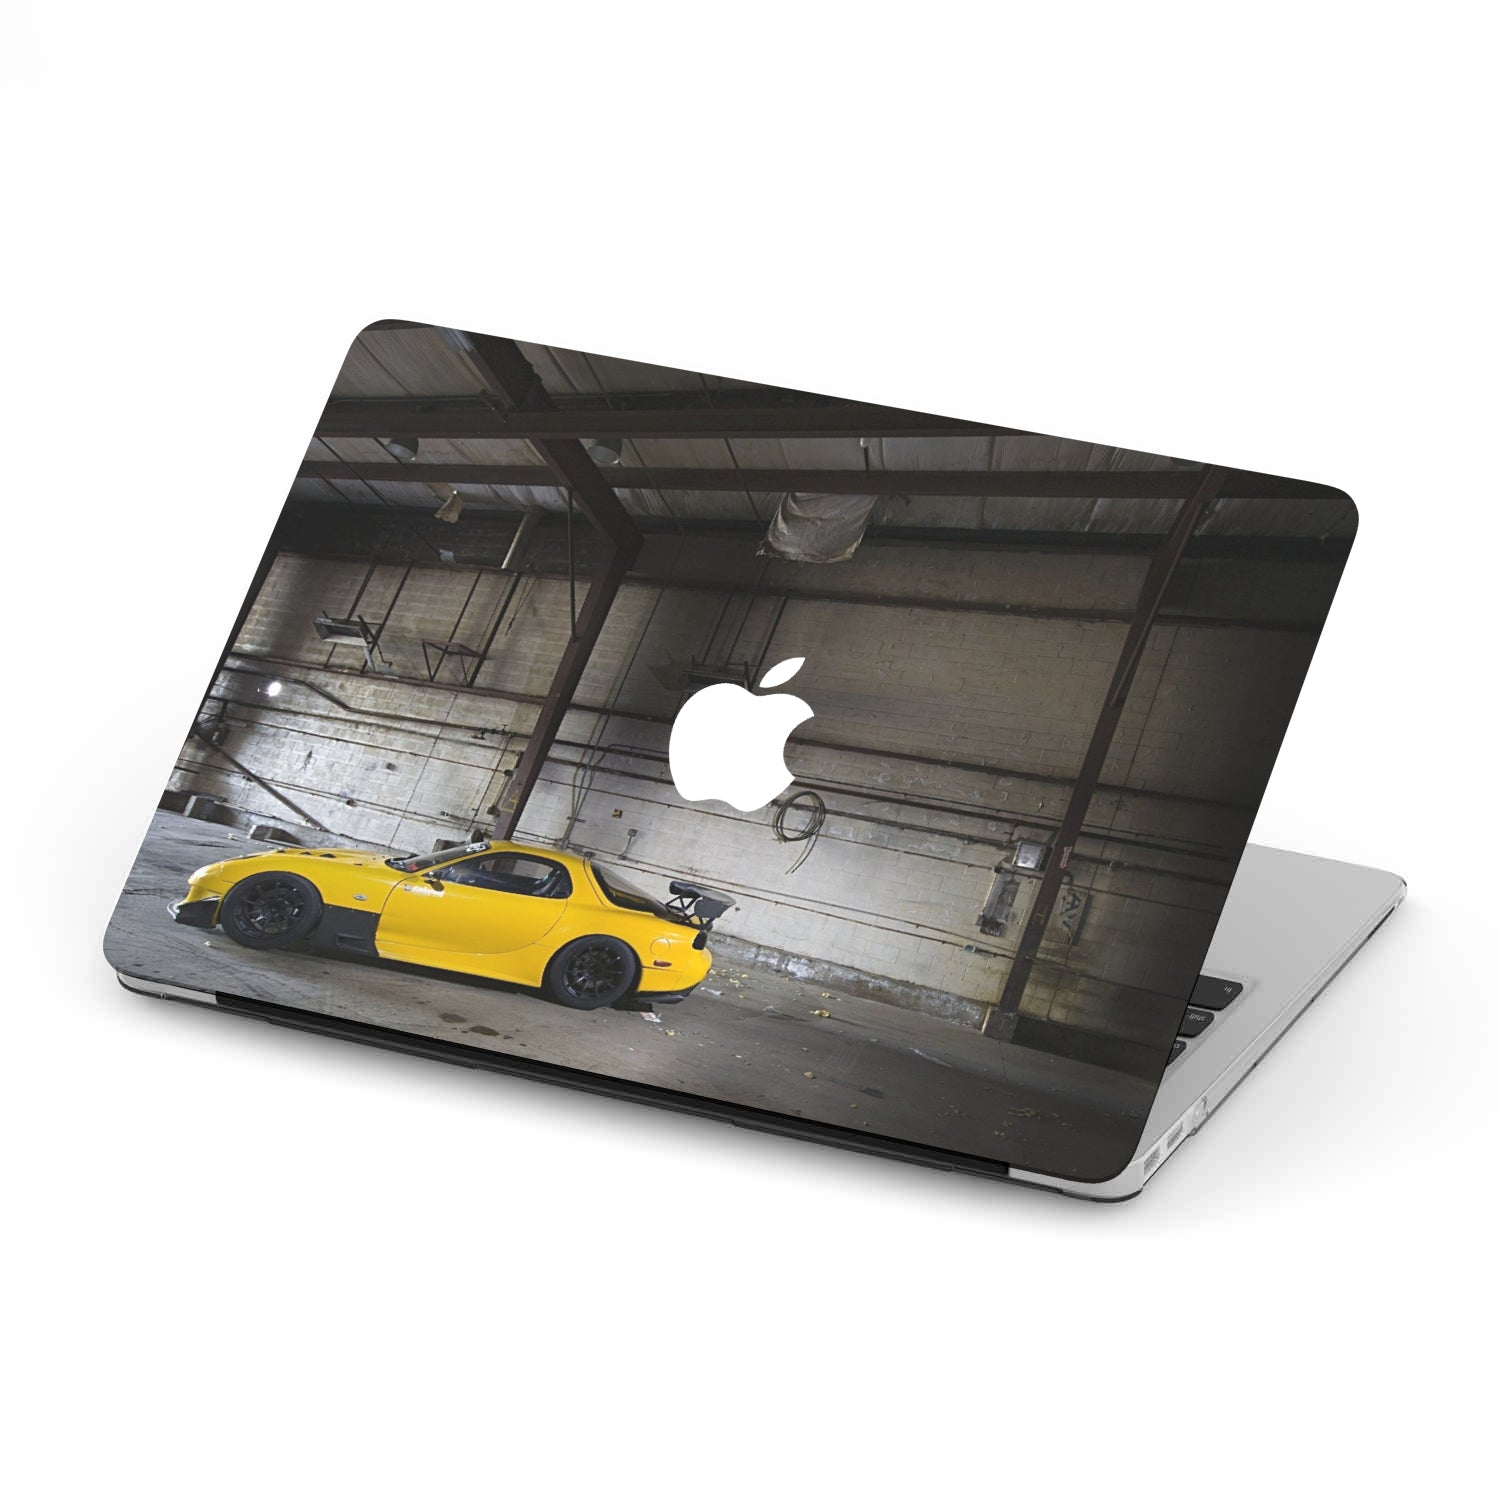 RX-7 FD MacBook Cover